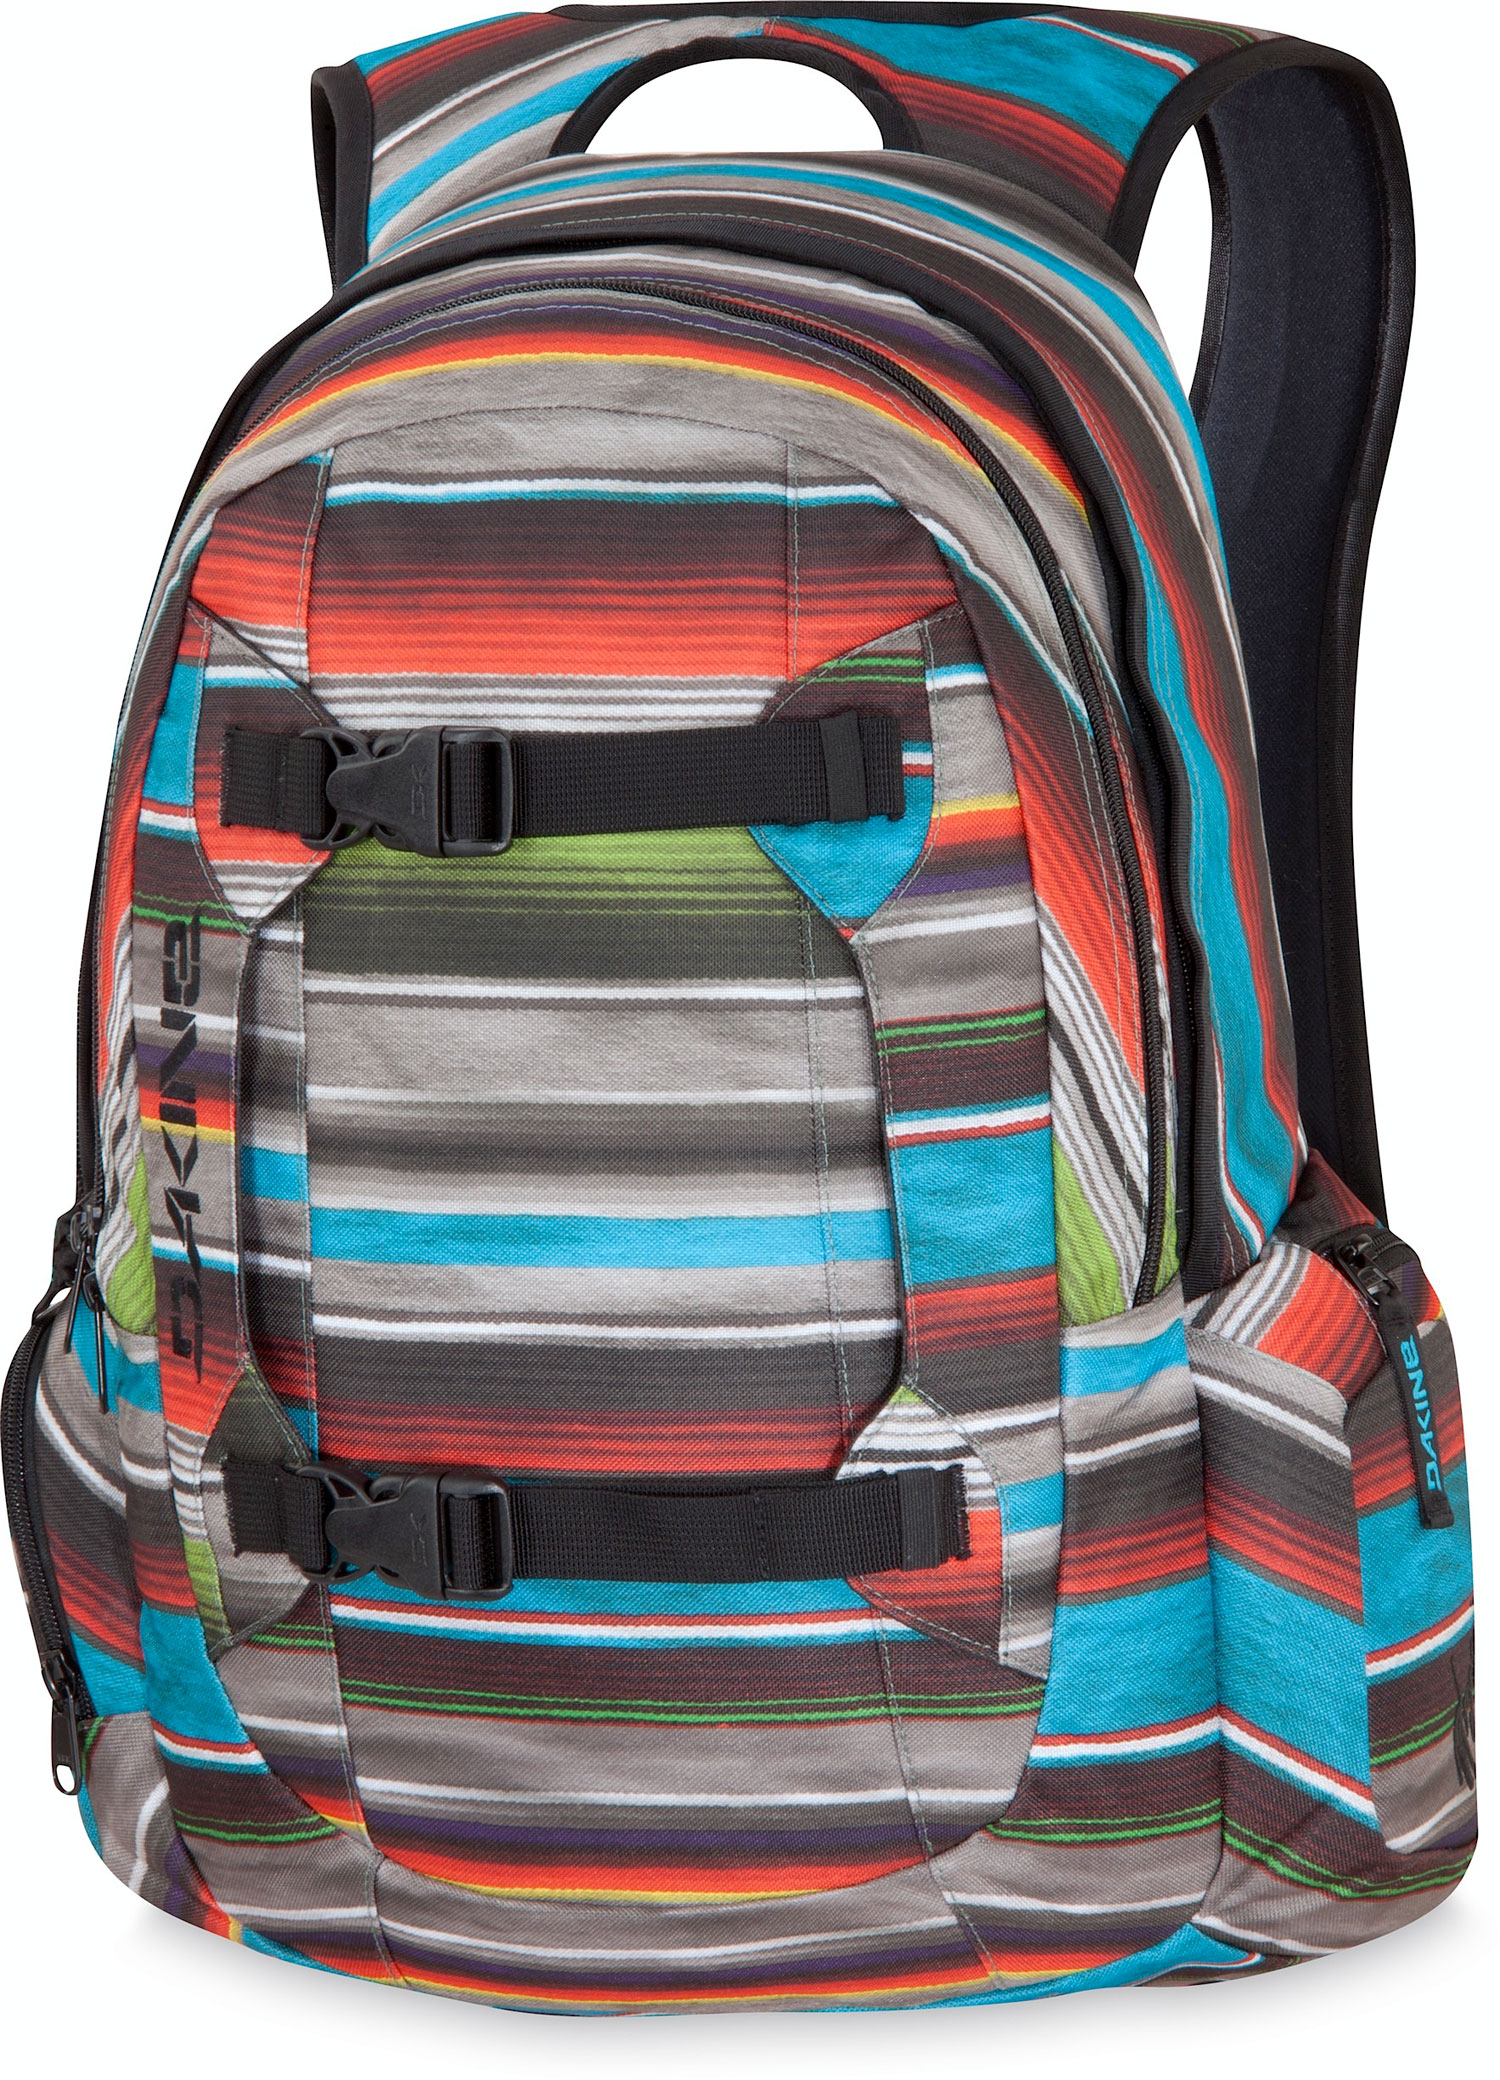 Cheap Dakine Backpacks 4v9wqX38